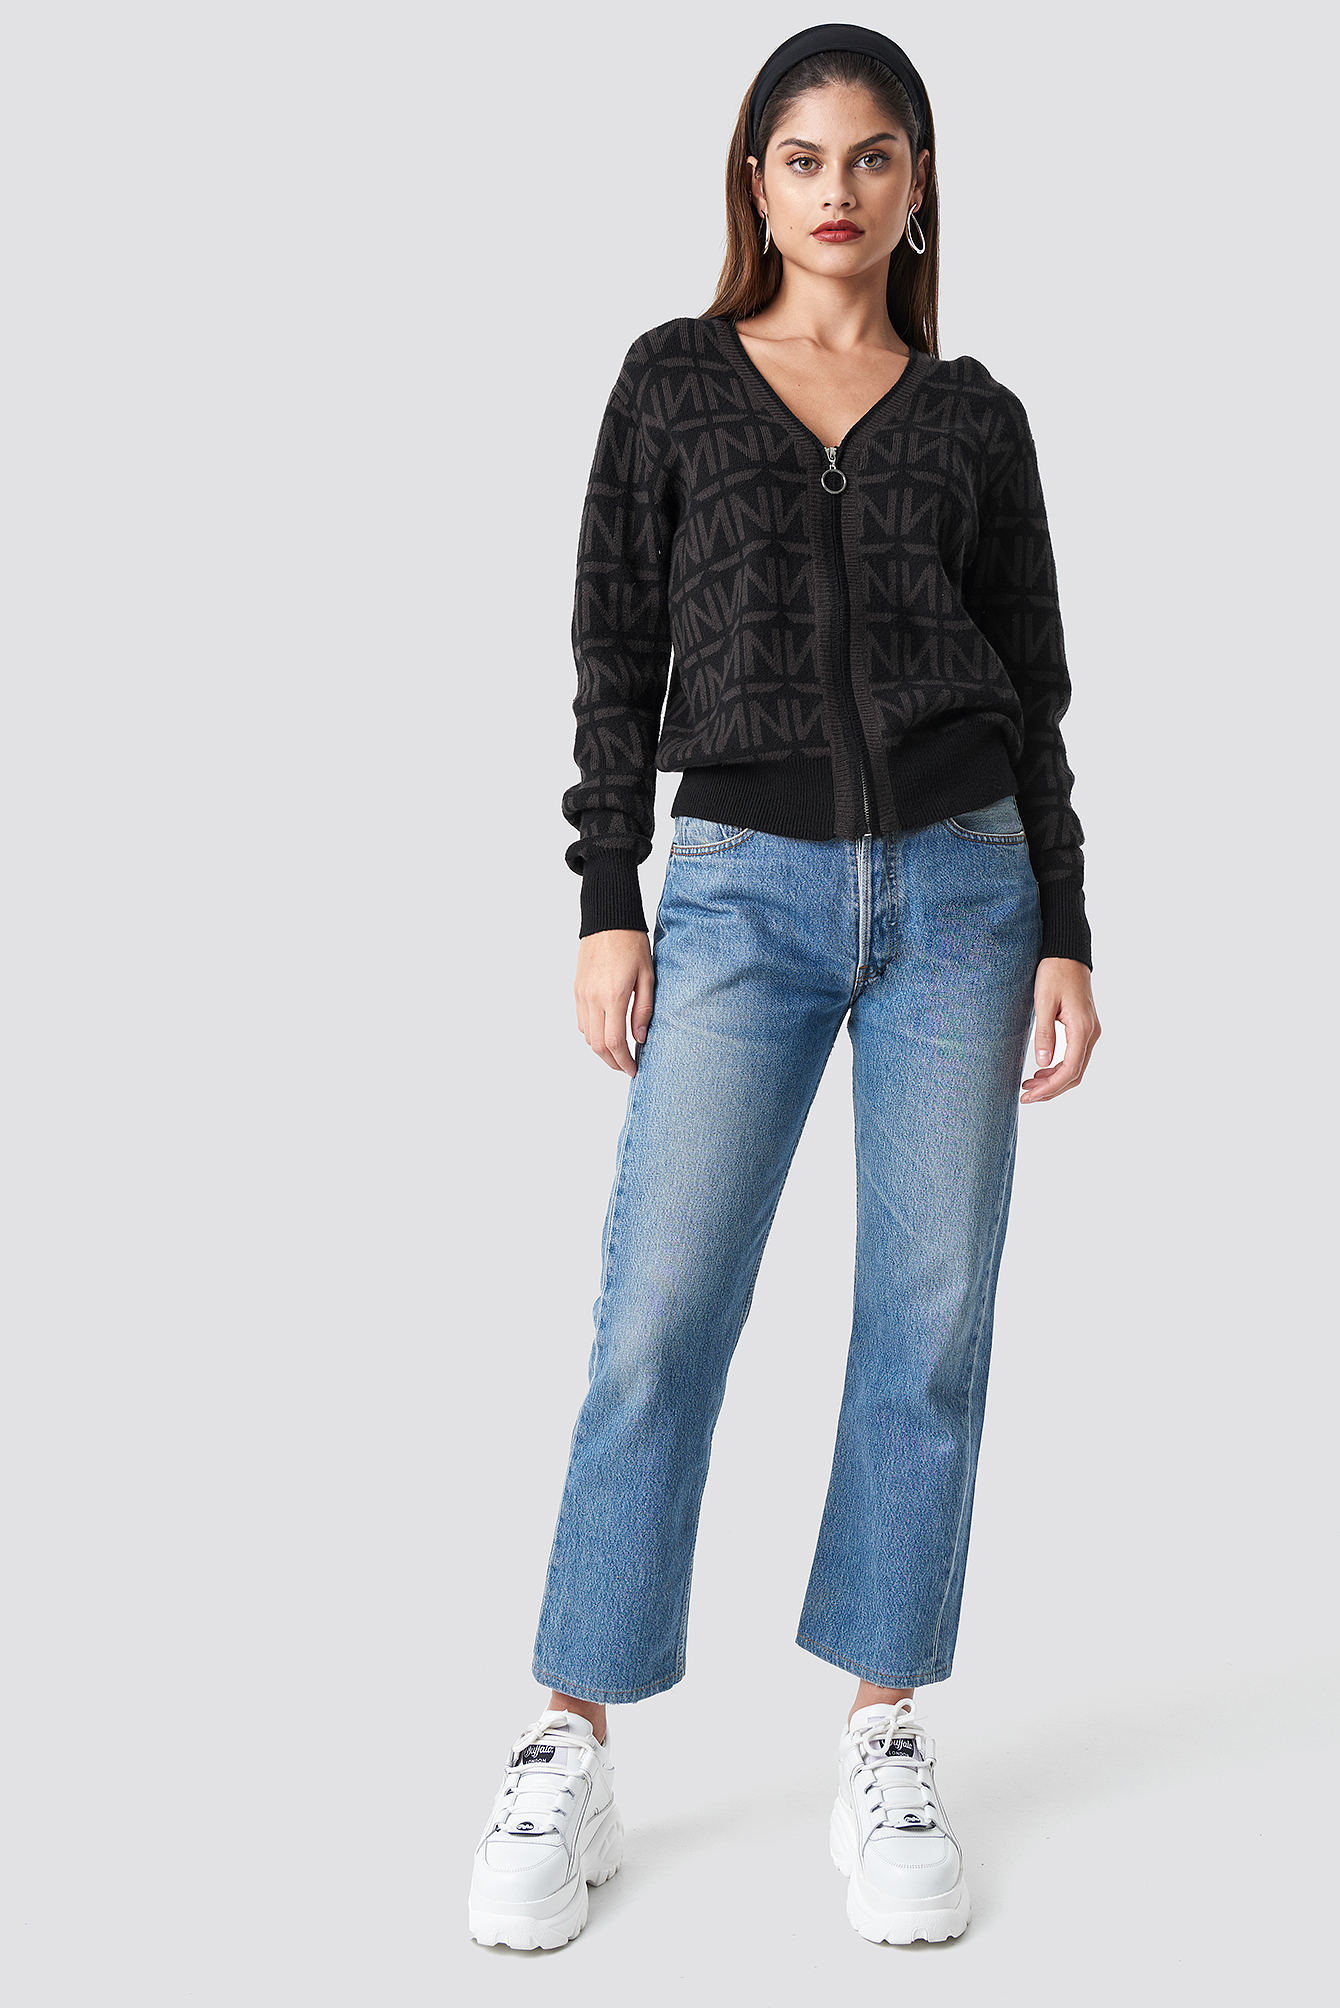 N Branded Knitted Cardigan NA-KD.COM